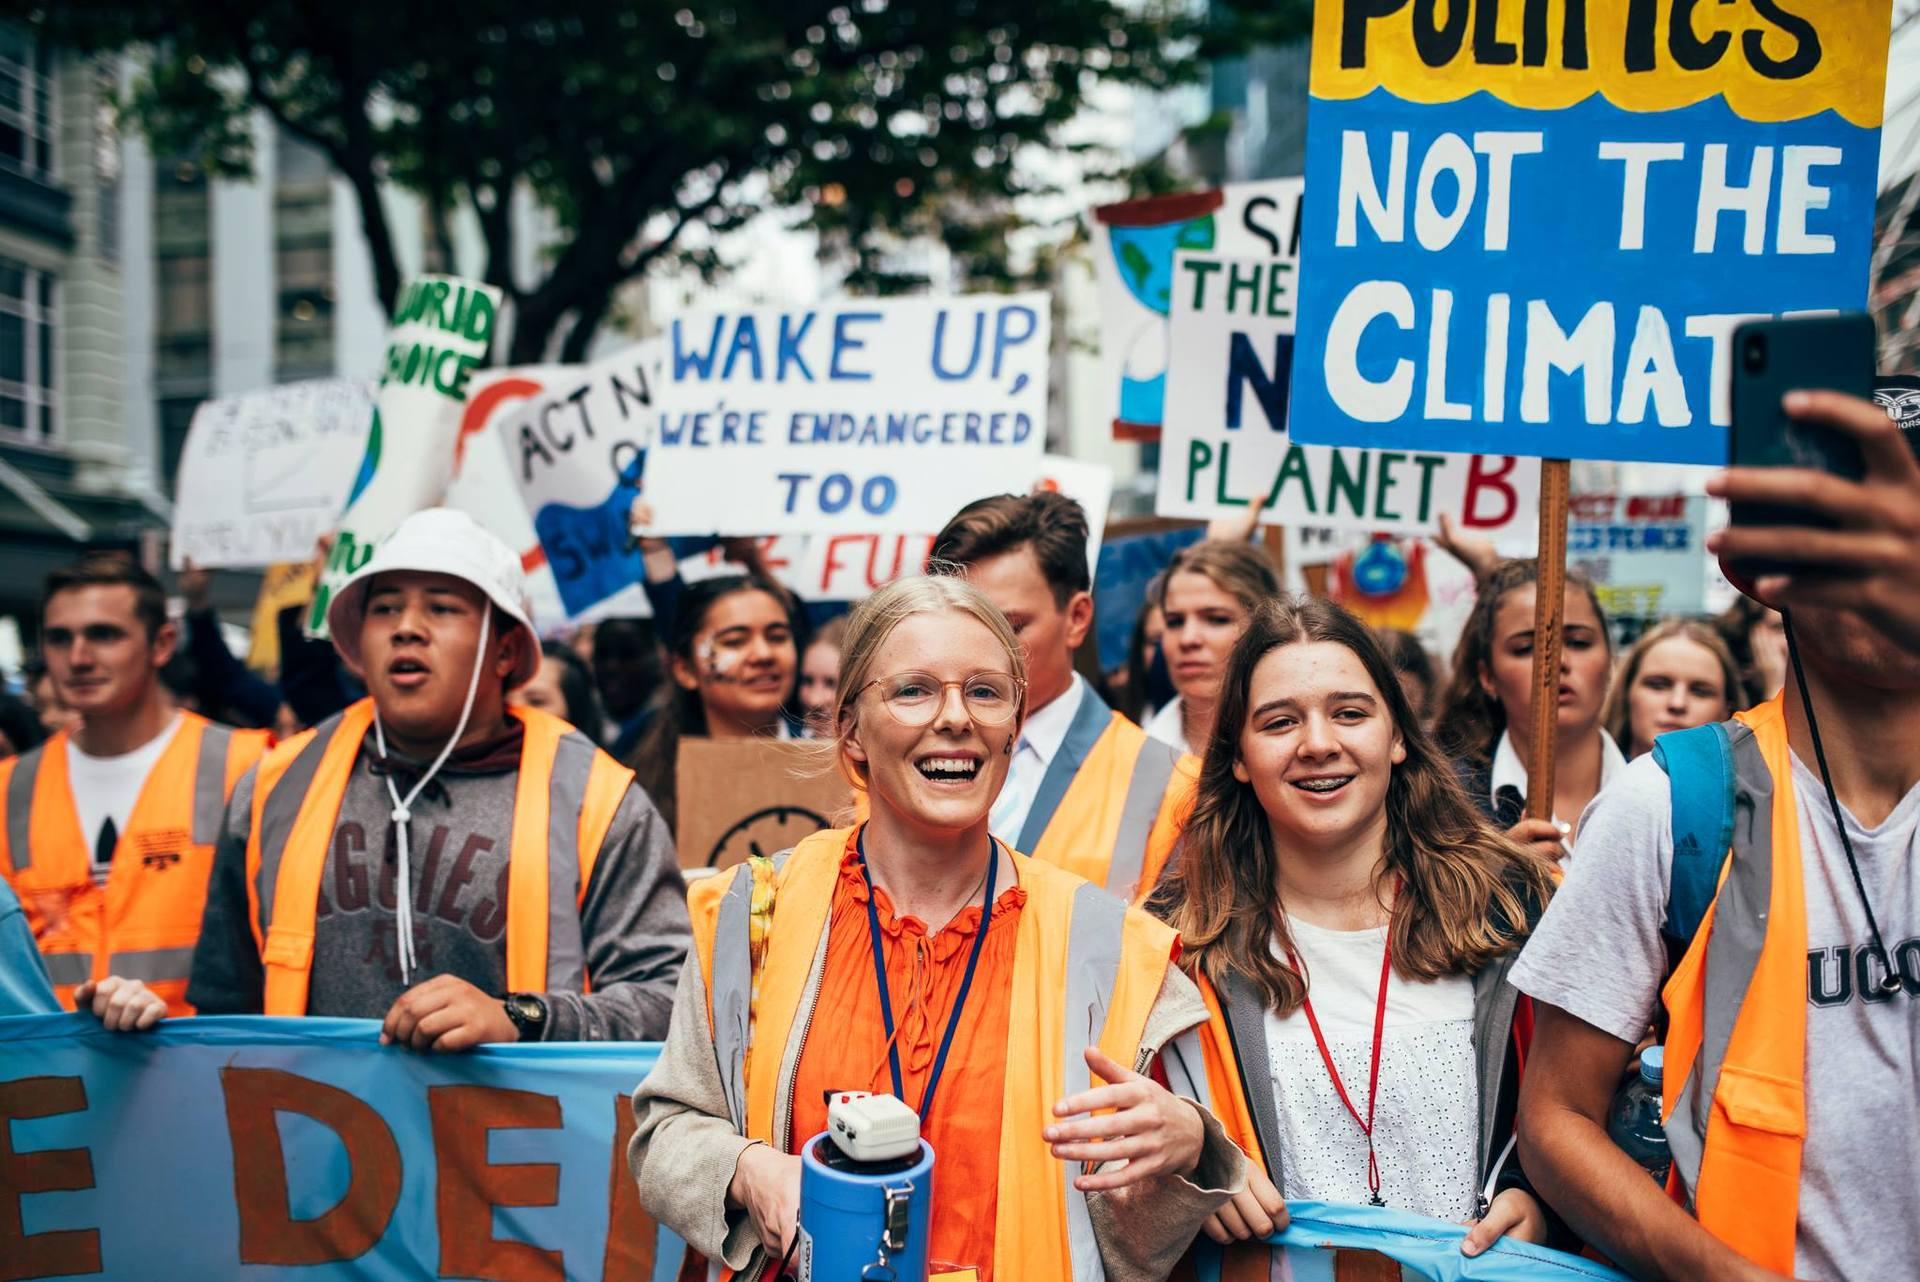 How do Kiwis really feel about climate change?